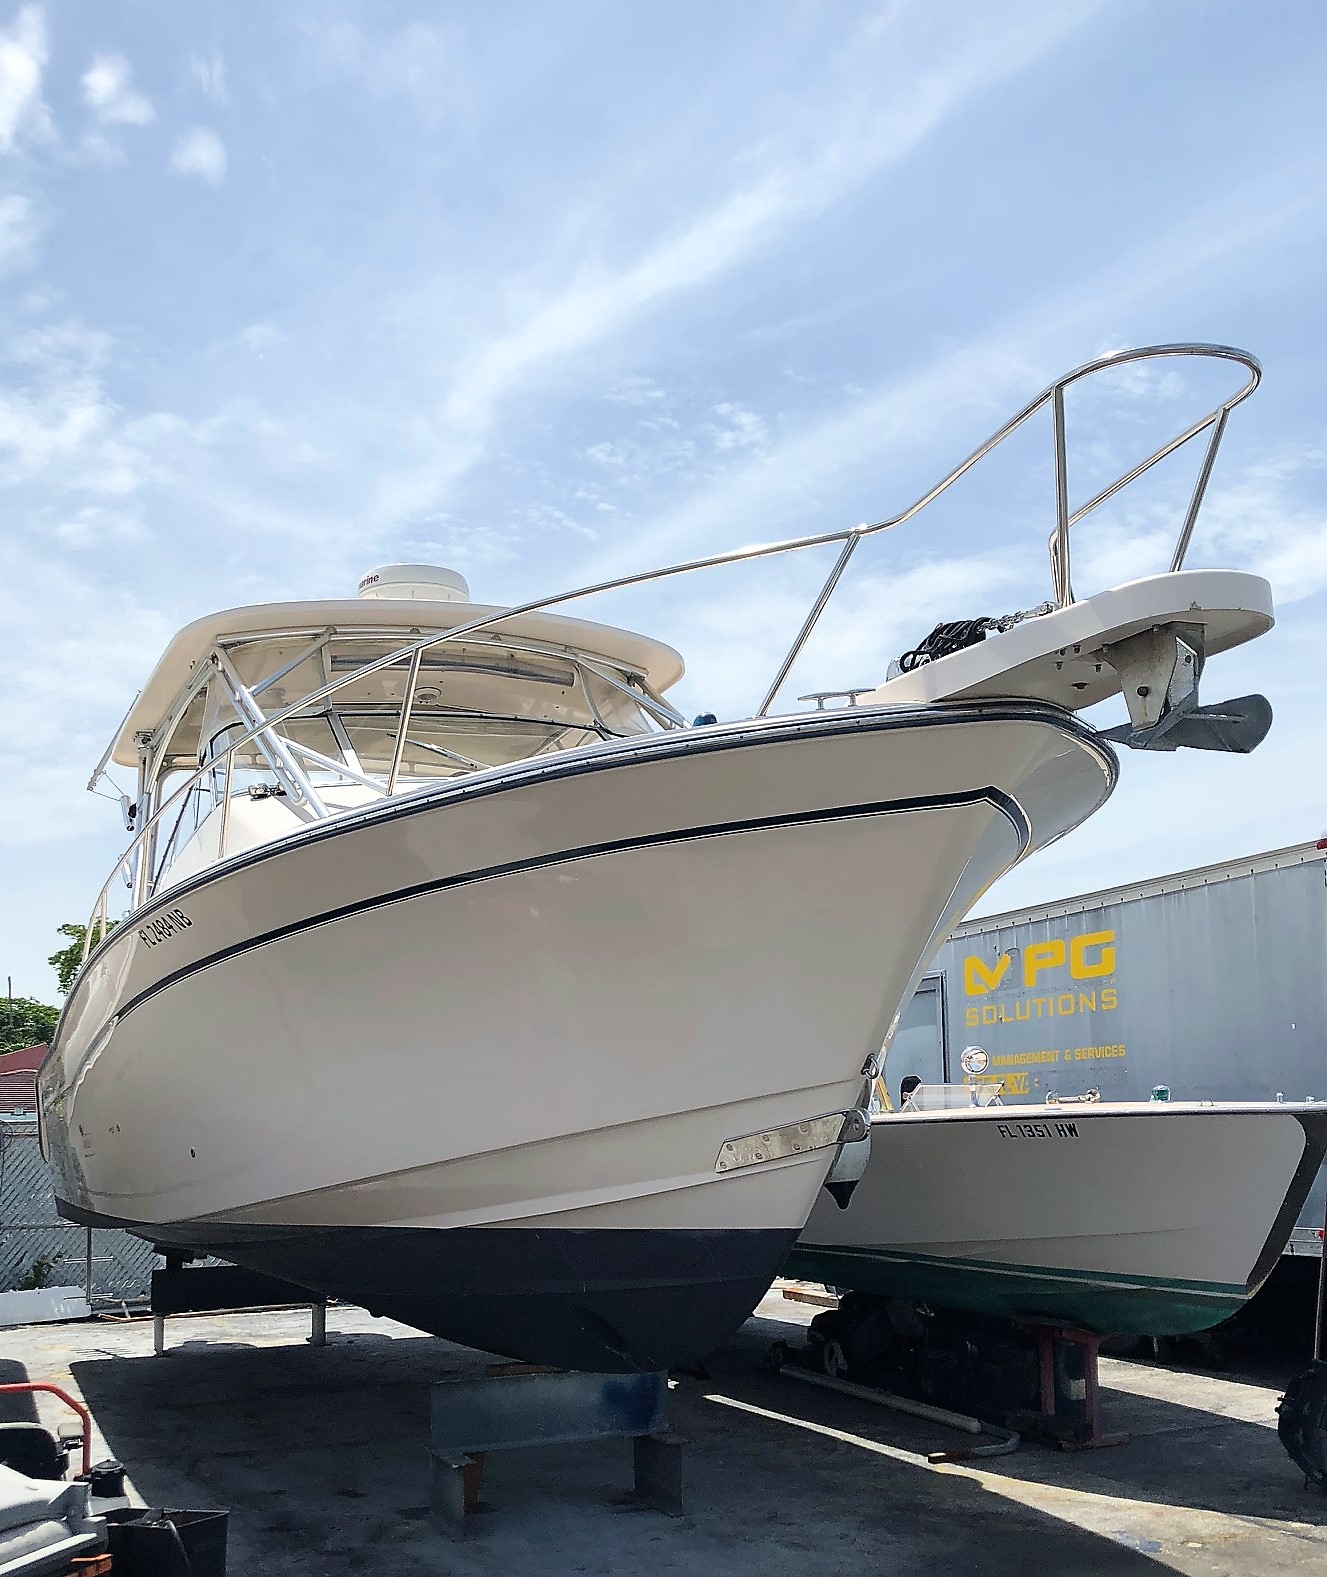 2006 GRADY WHITE 330 EXPRESS-PRICE DRASTICALLY REDUCED AND FRESHLY SERVICED  FOR QUICK SALE NOW WITH NEW 5-YEARS HULL WARRANTY BEGINNING JANUARY 2018